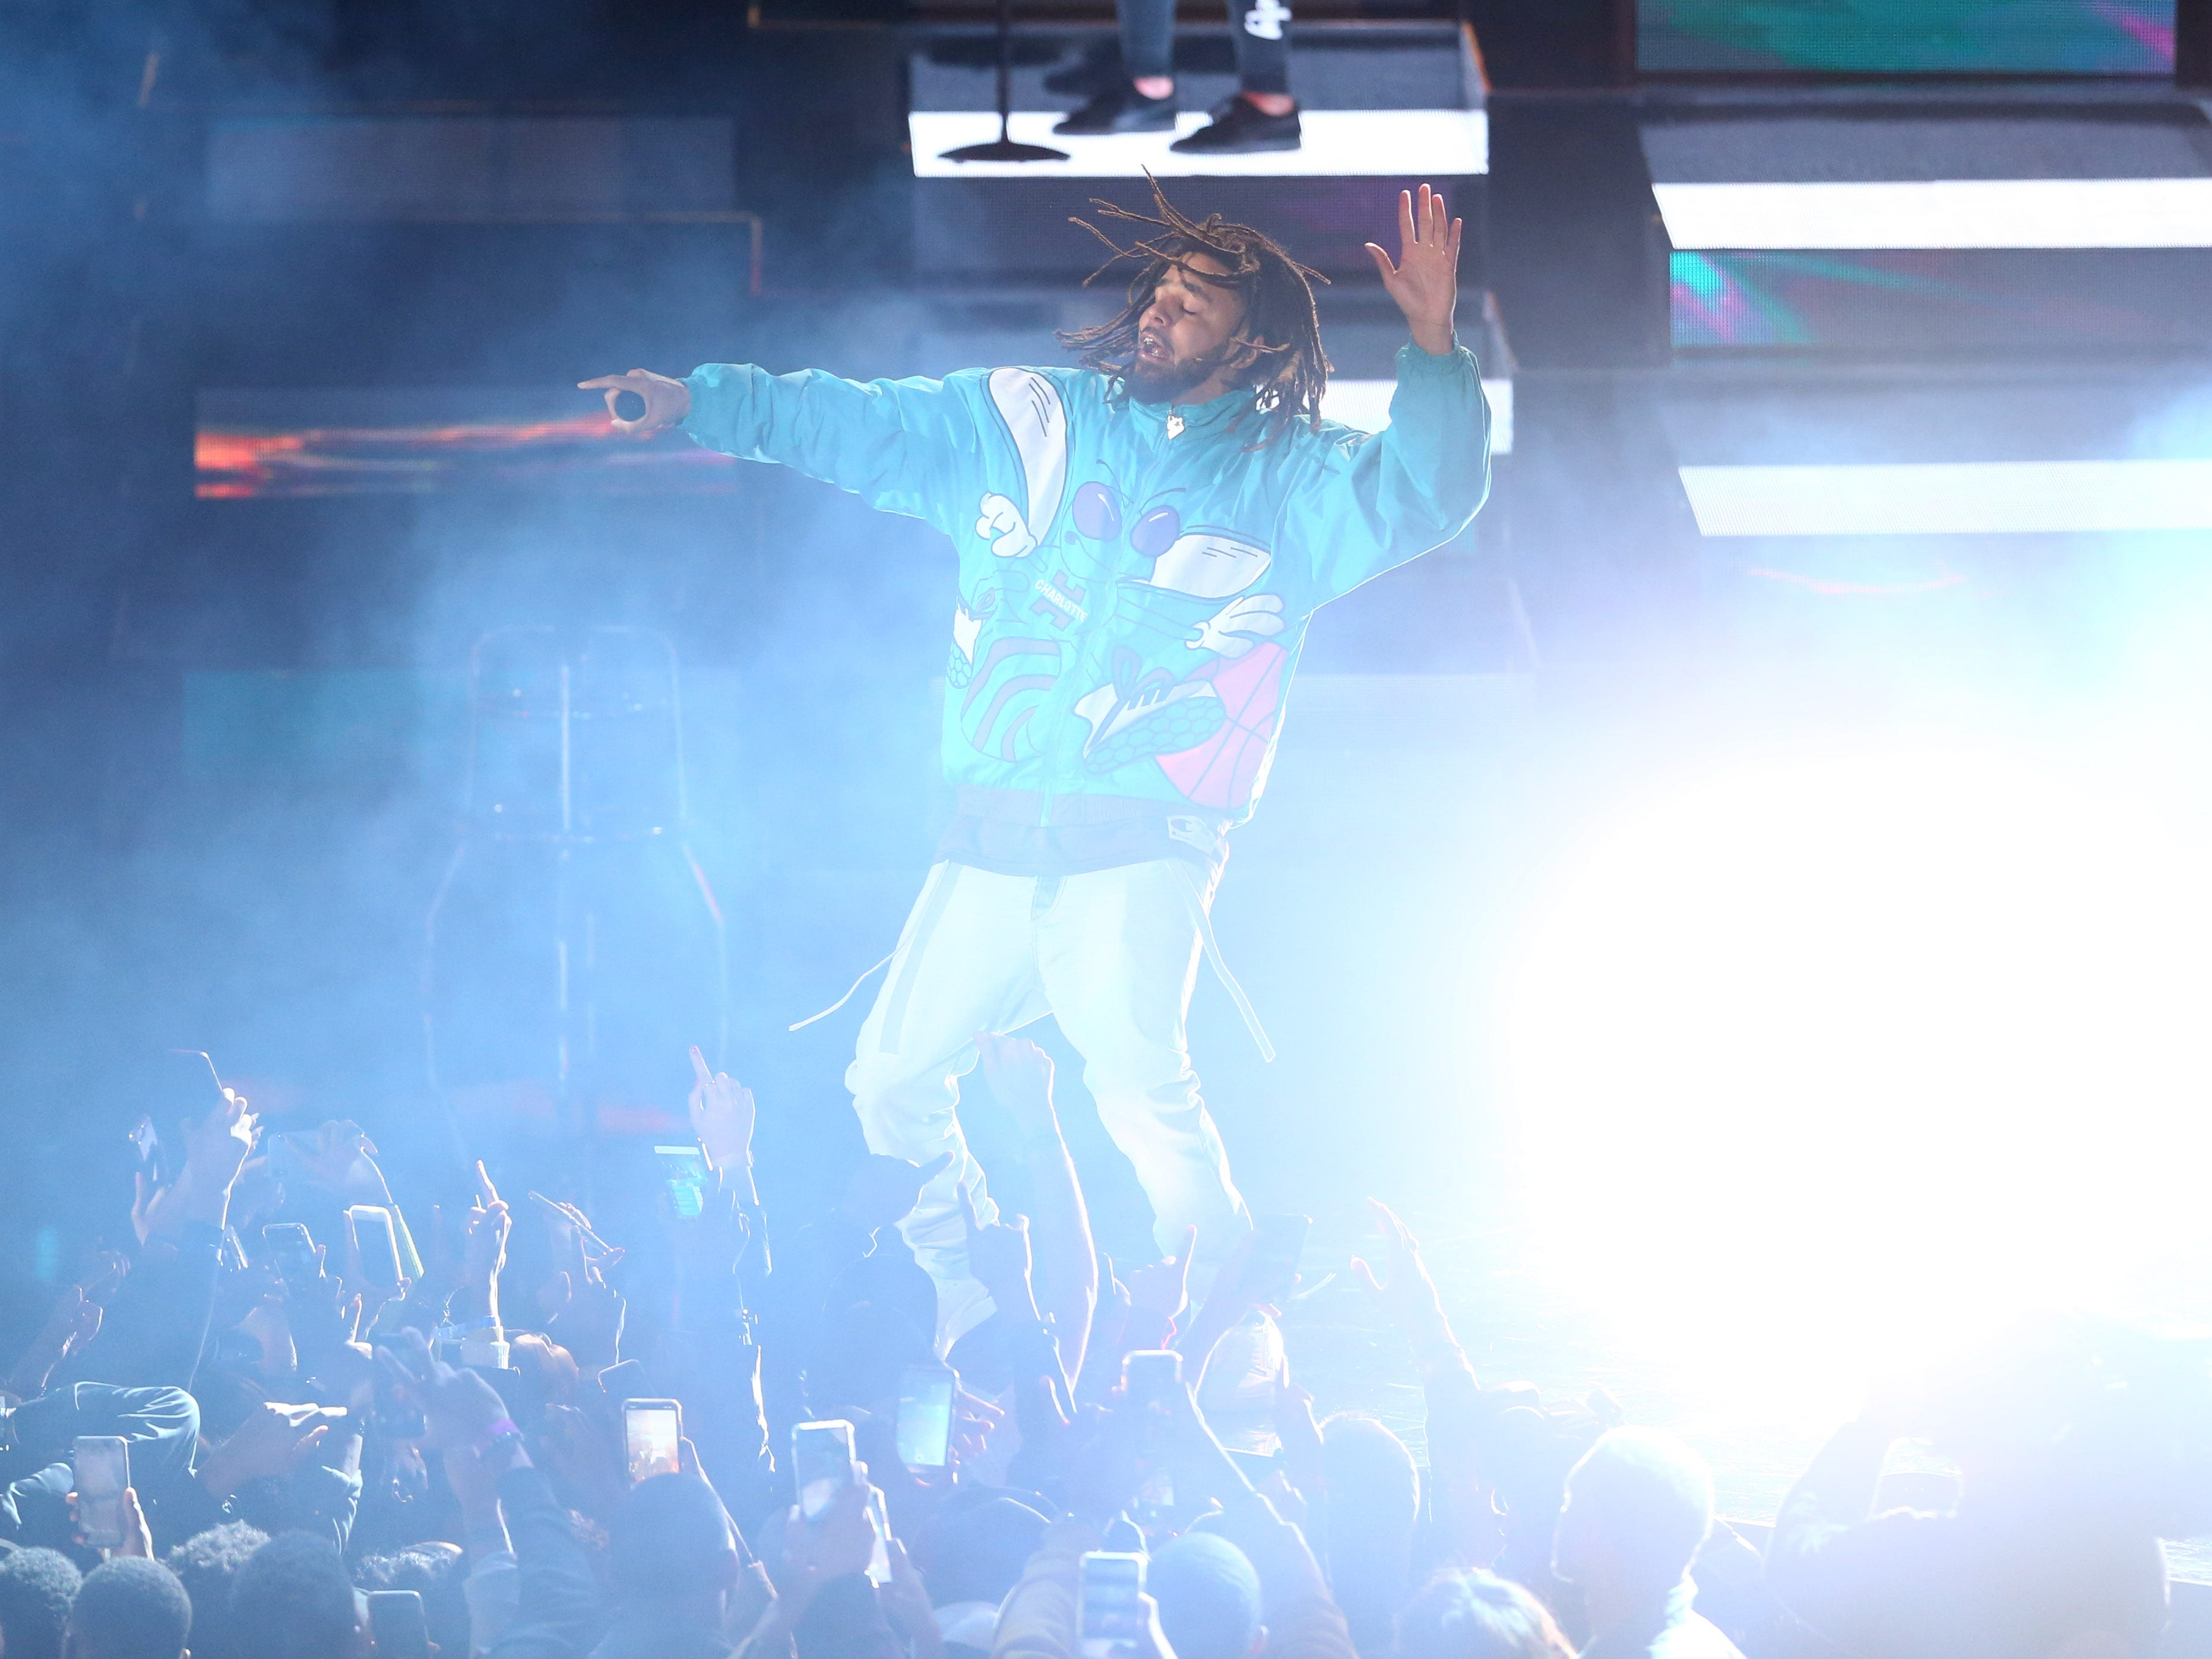 Recording artist J. Cole performs during the halftime show at the All Star Game.